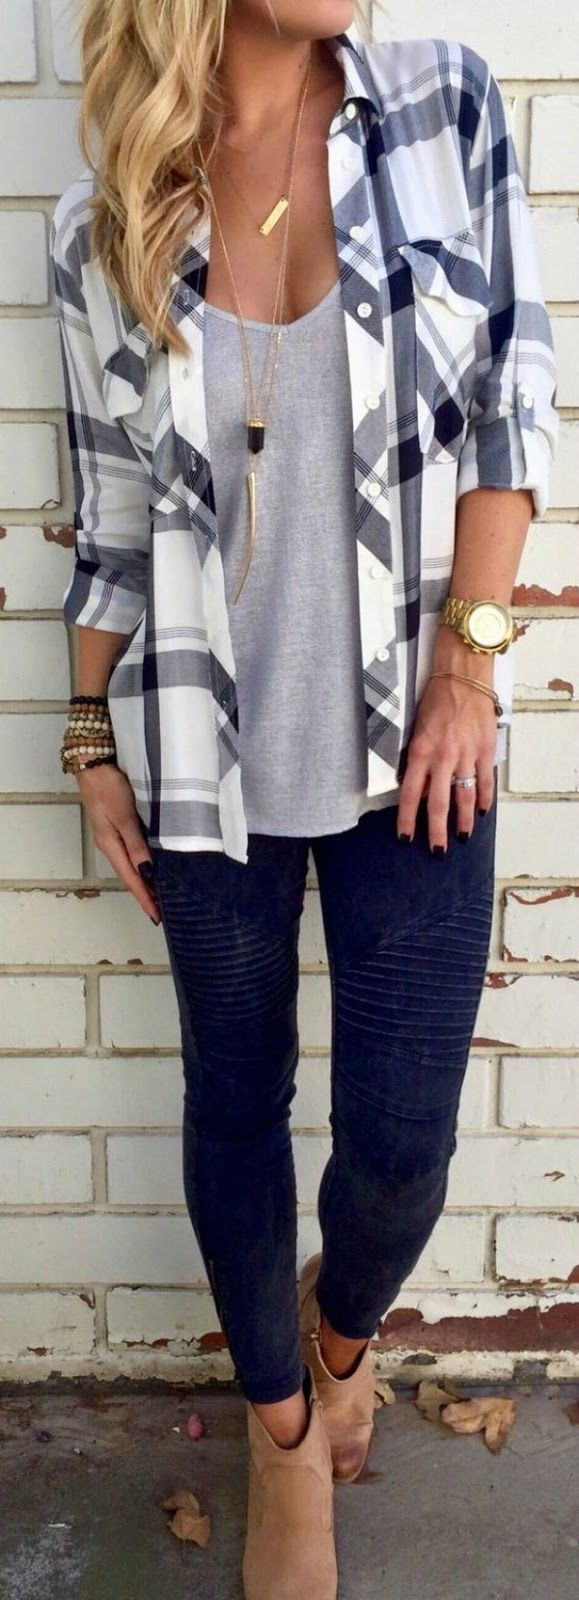 Great outfit and love the texture on the jeans